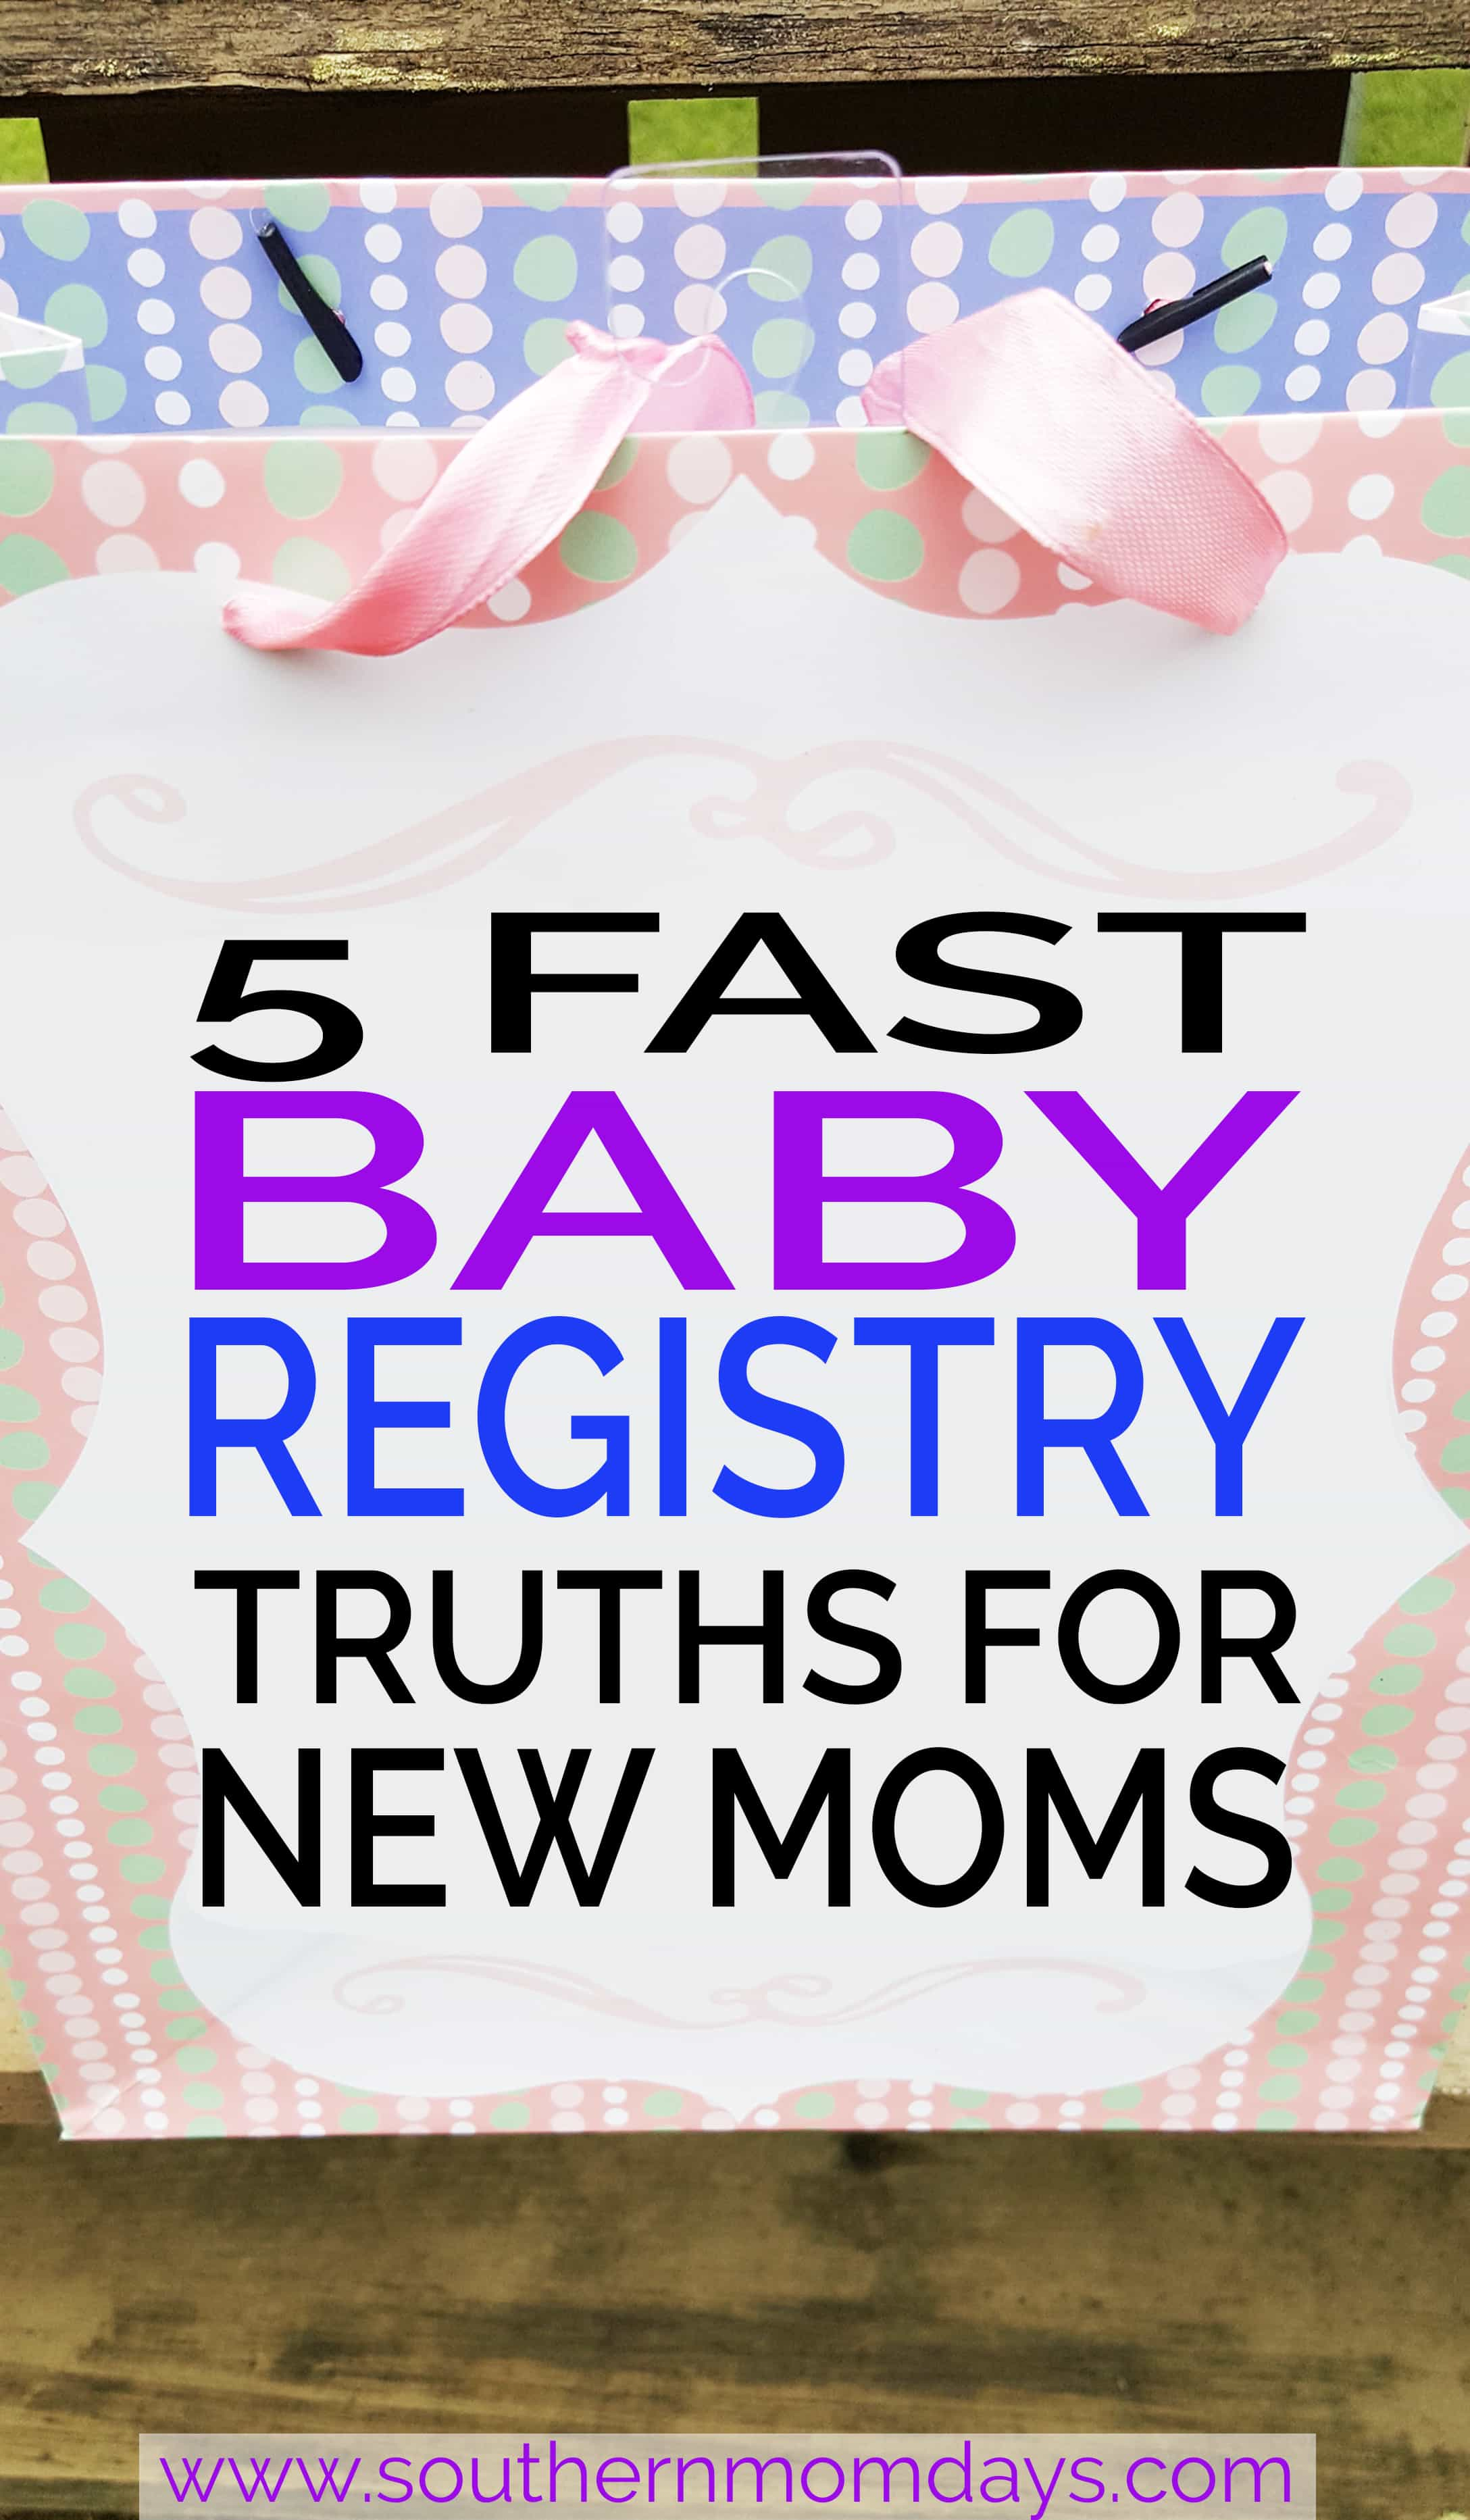 Five Fast Baby Registry Truths for New Moms, featured on the Southern Momdays blog